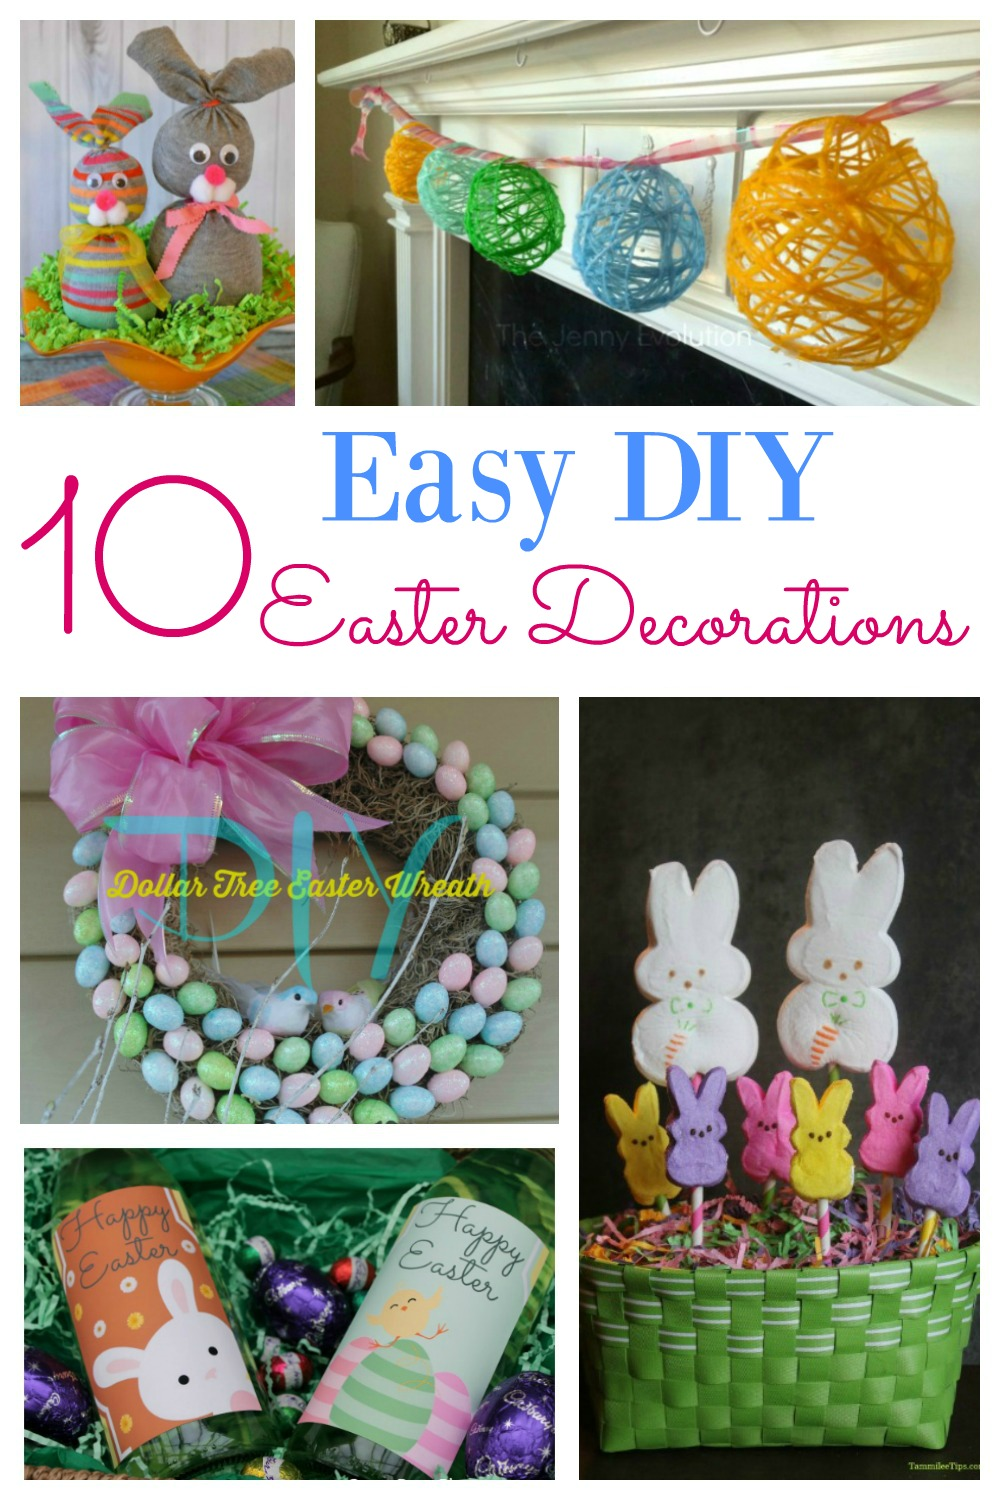 How to make 10 Easy DIY Easter decorations for the home. Including dollar store creations, center pieces, table settings and more. These ideas are simple to replicate and will look beautiful in your home. #Easterdecorations #DIY #Simple #DollarStore